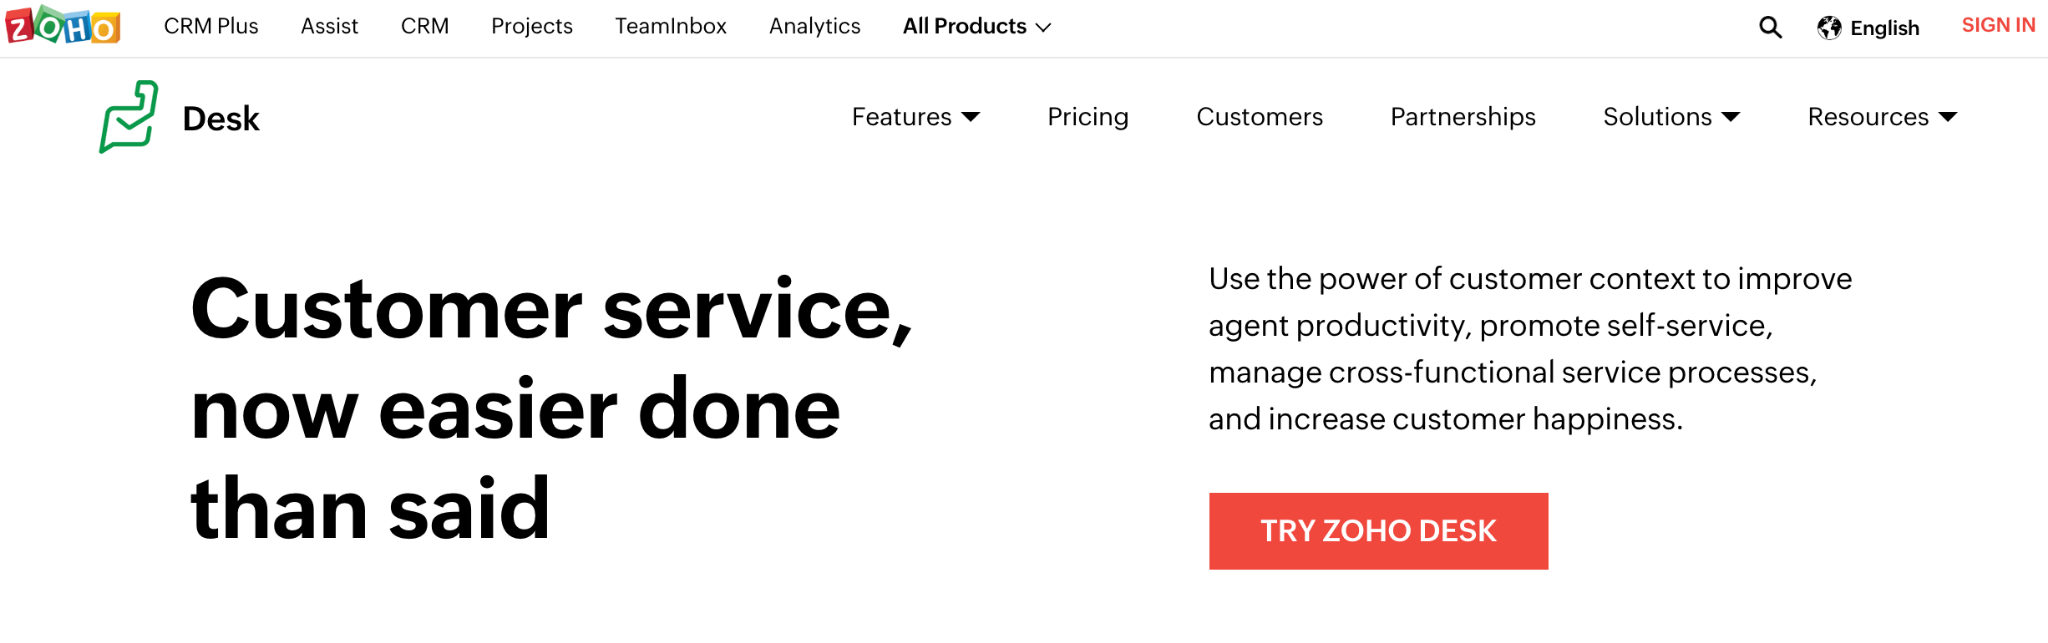 Zoho Desk homepage: Customer service, now easier done than said.